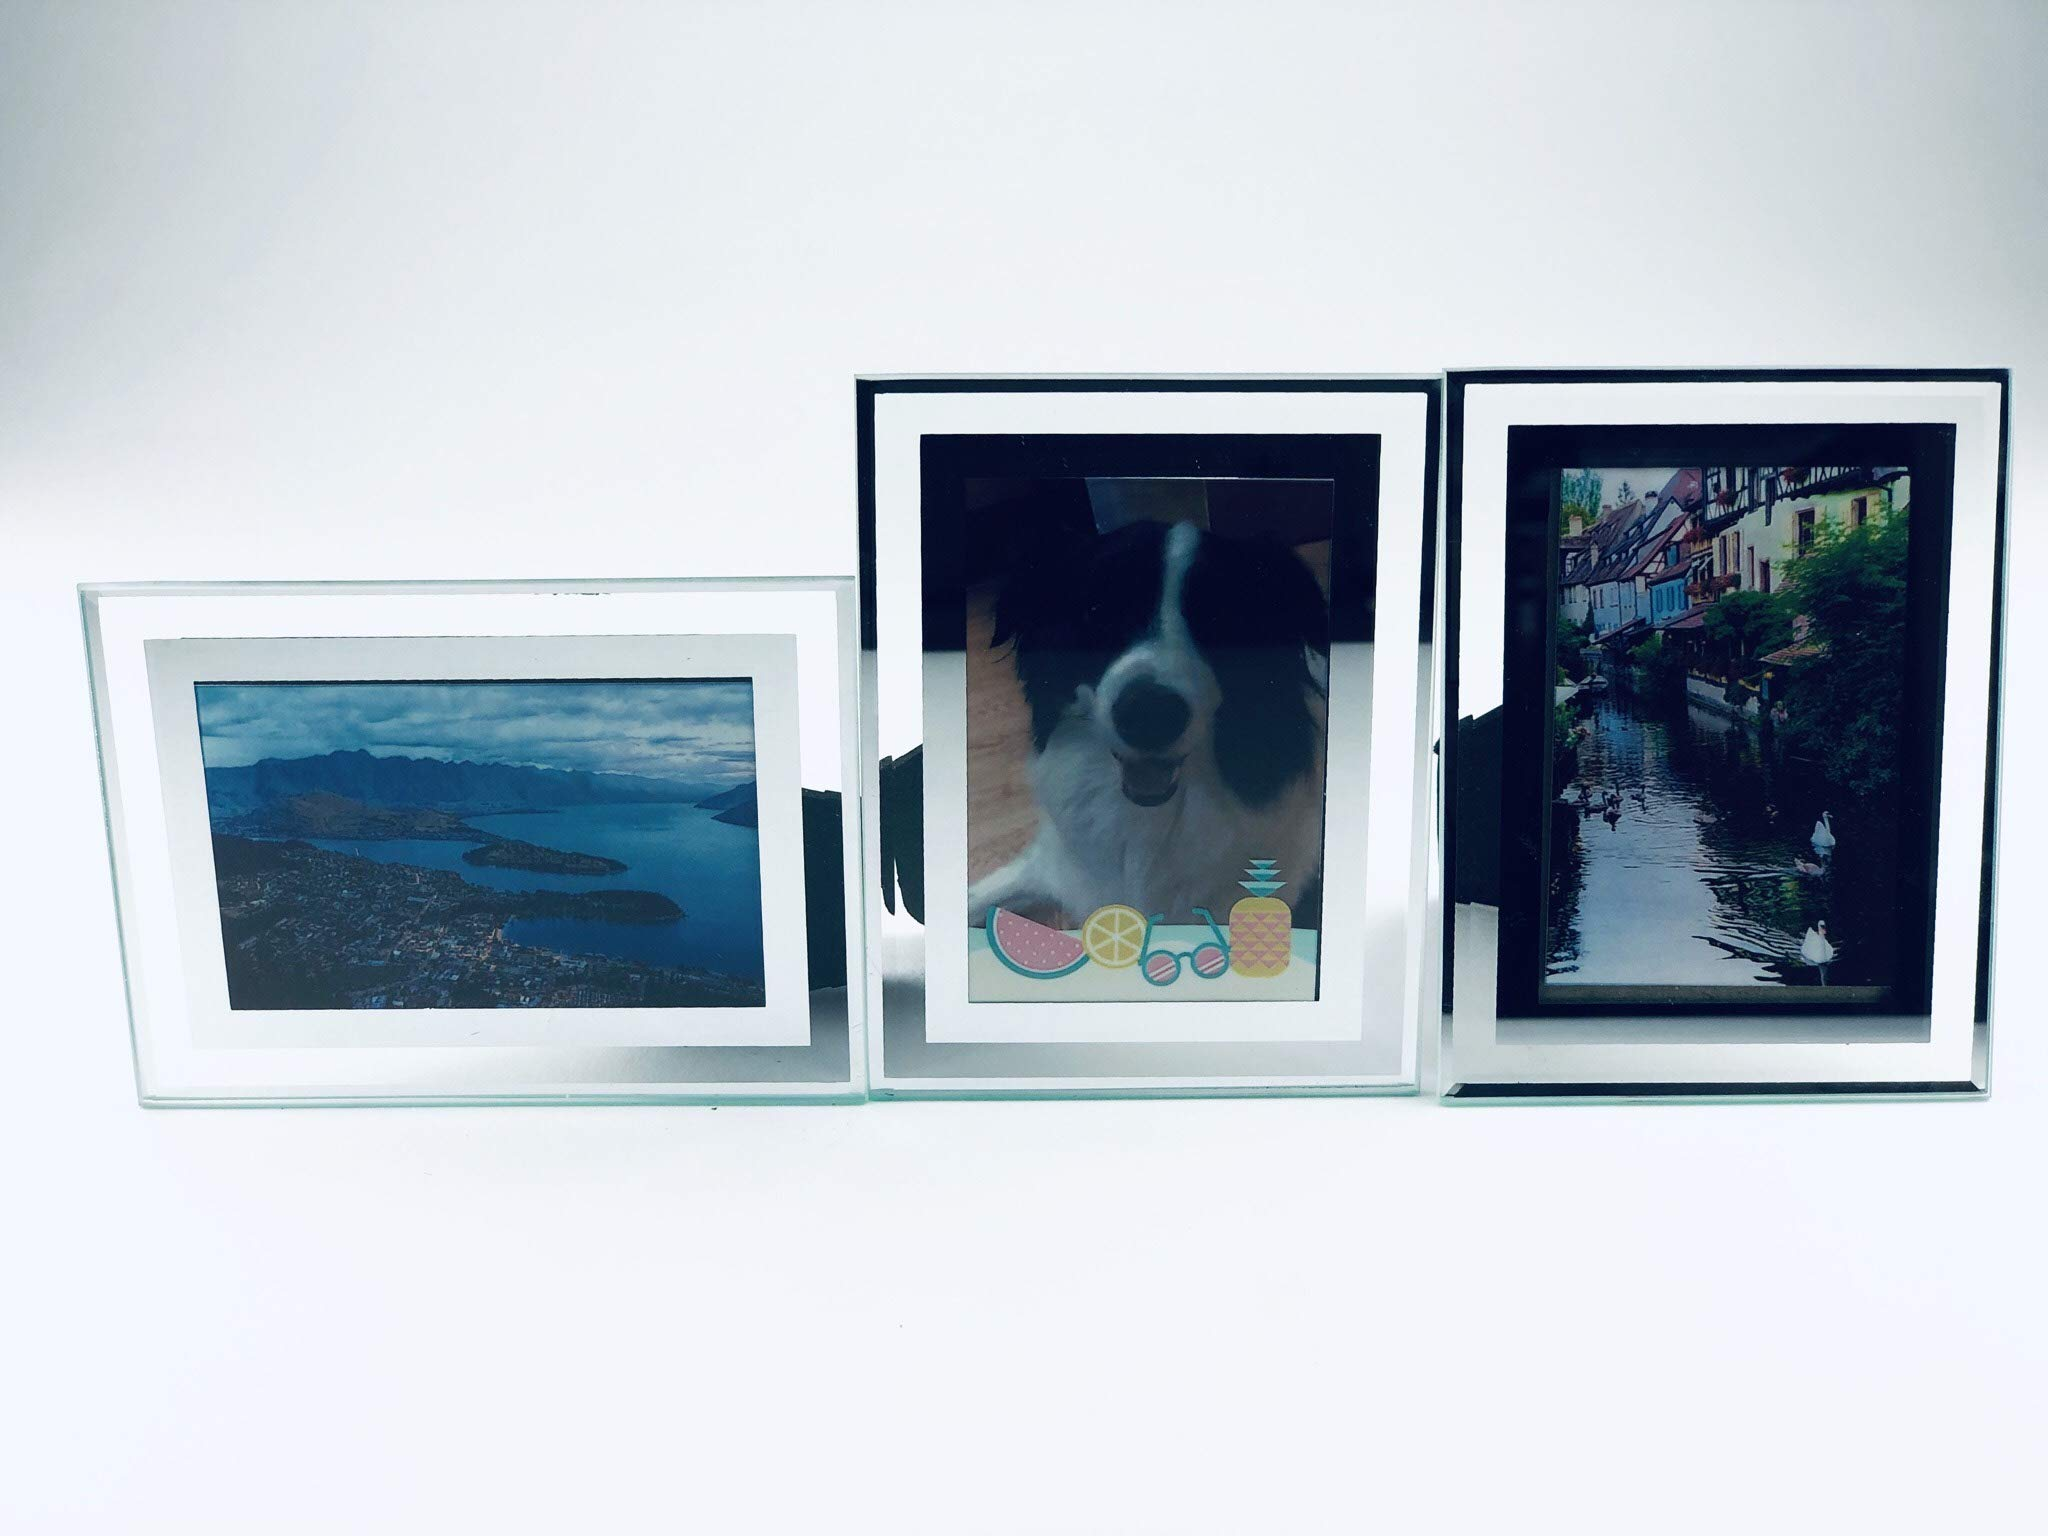 3pcs 3' Crystal Glass Picture Frame for HP Sprocket, Canon Ivy, Polaroid Zip Pocket,Kodak Instant Printer